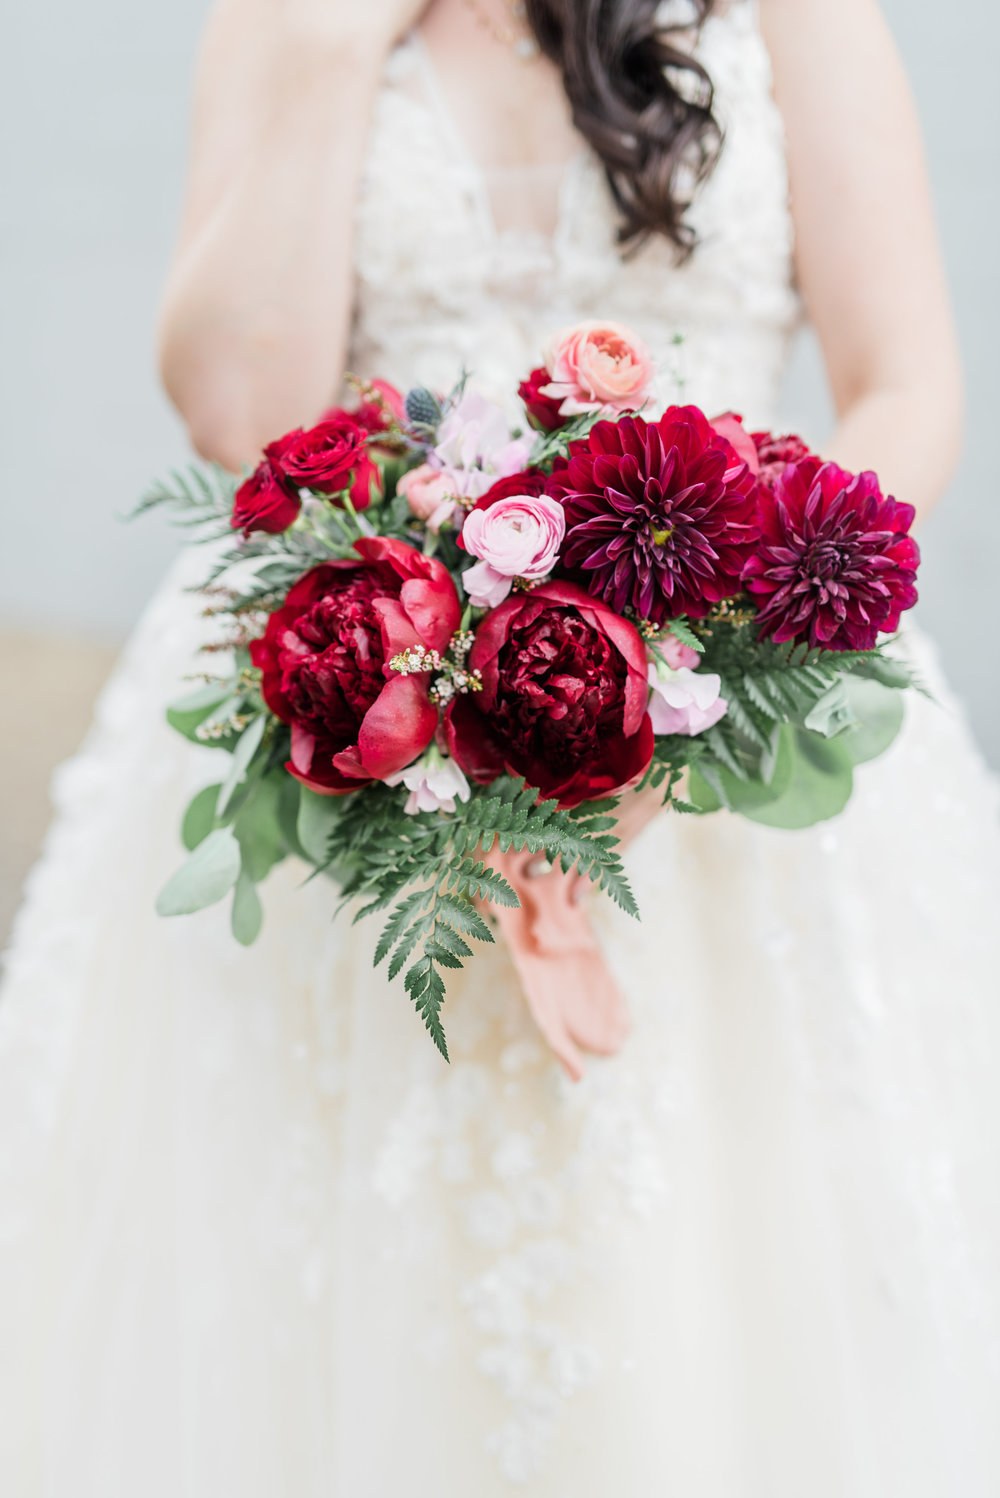 Book Inspired Wedding in Phoenix - Bridal Bouquet